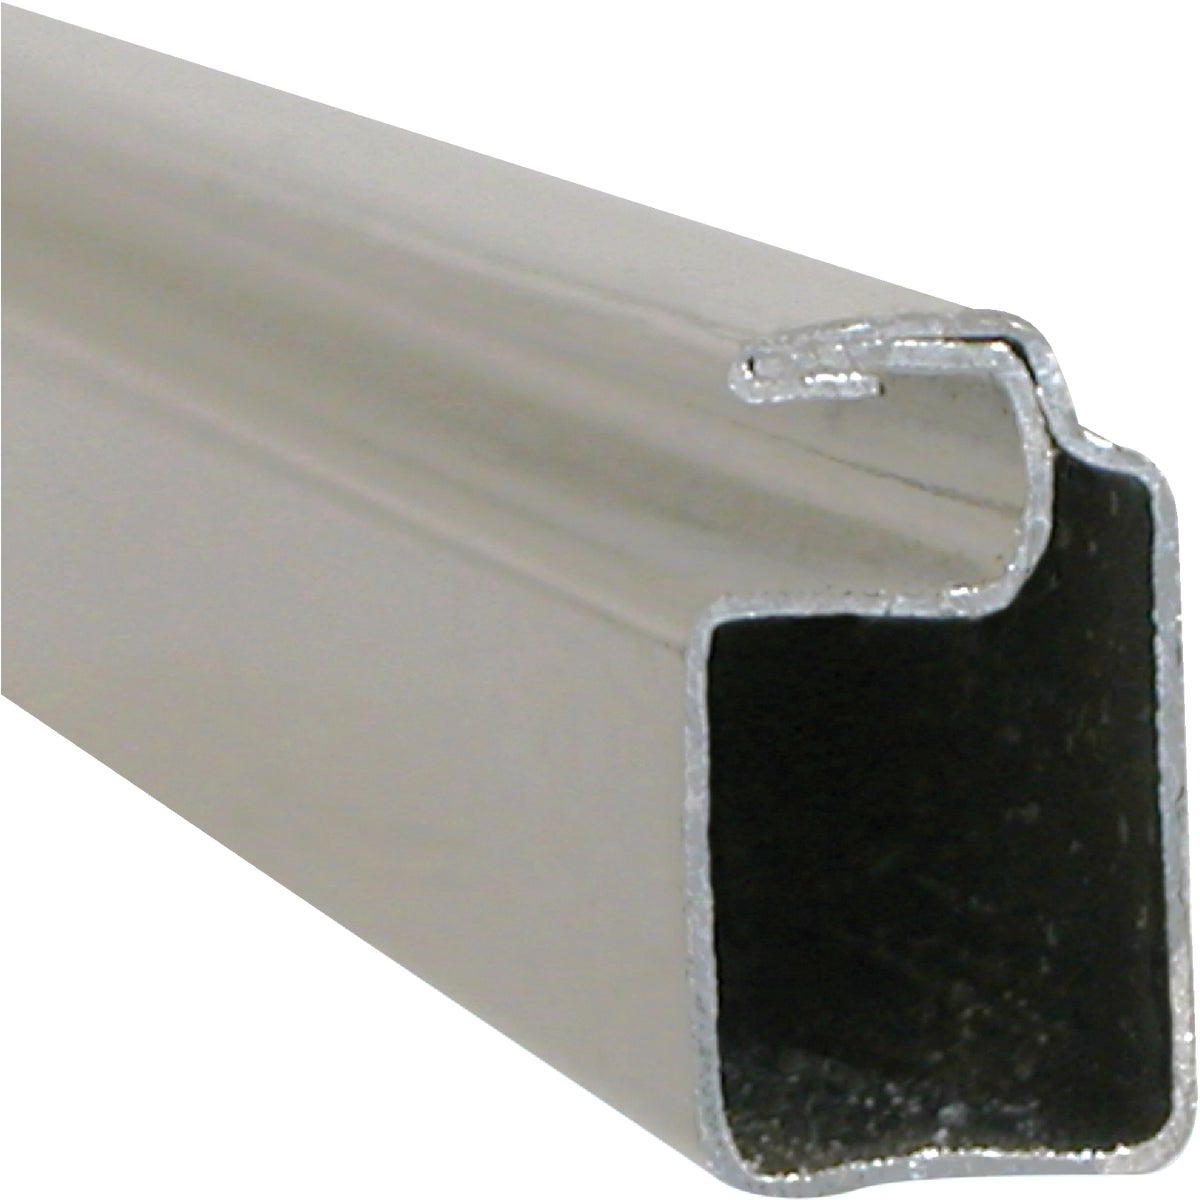 "3/4X7/16X12'2""SCRN FRAME - PL15617 by Prime Line Products"